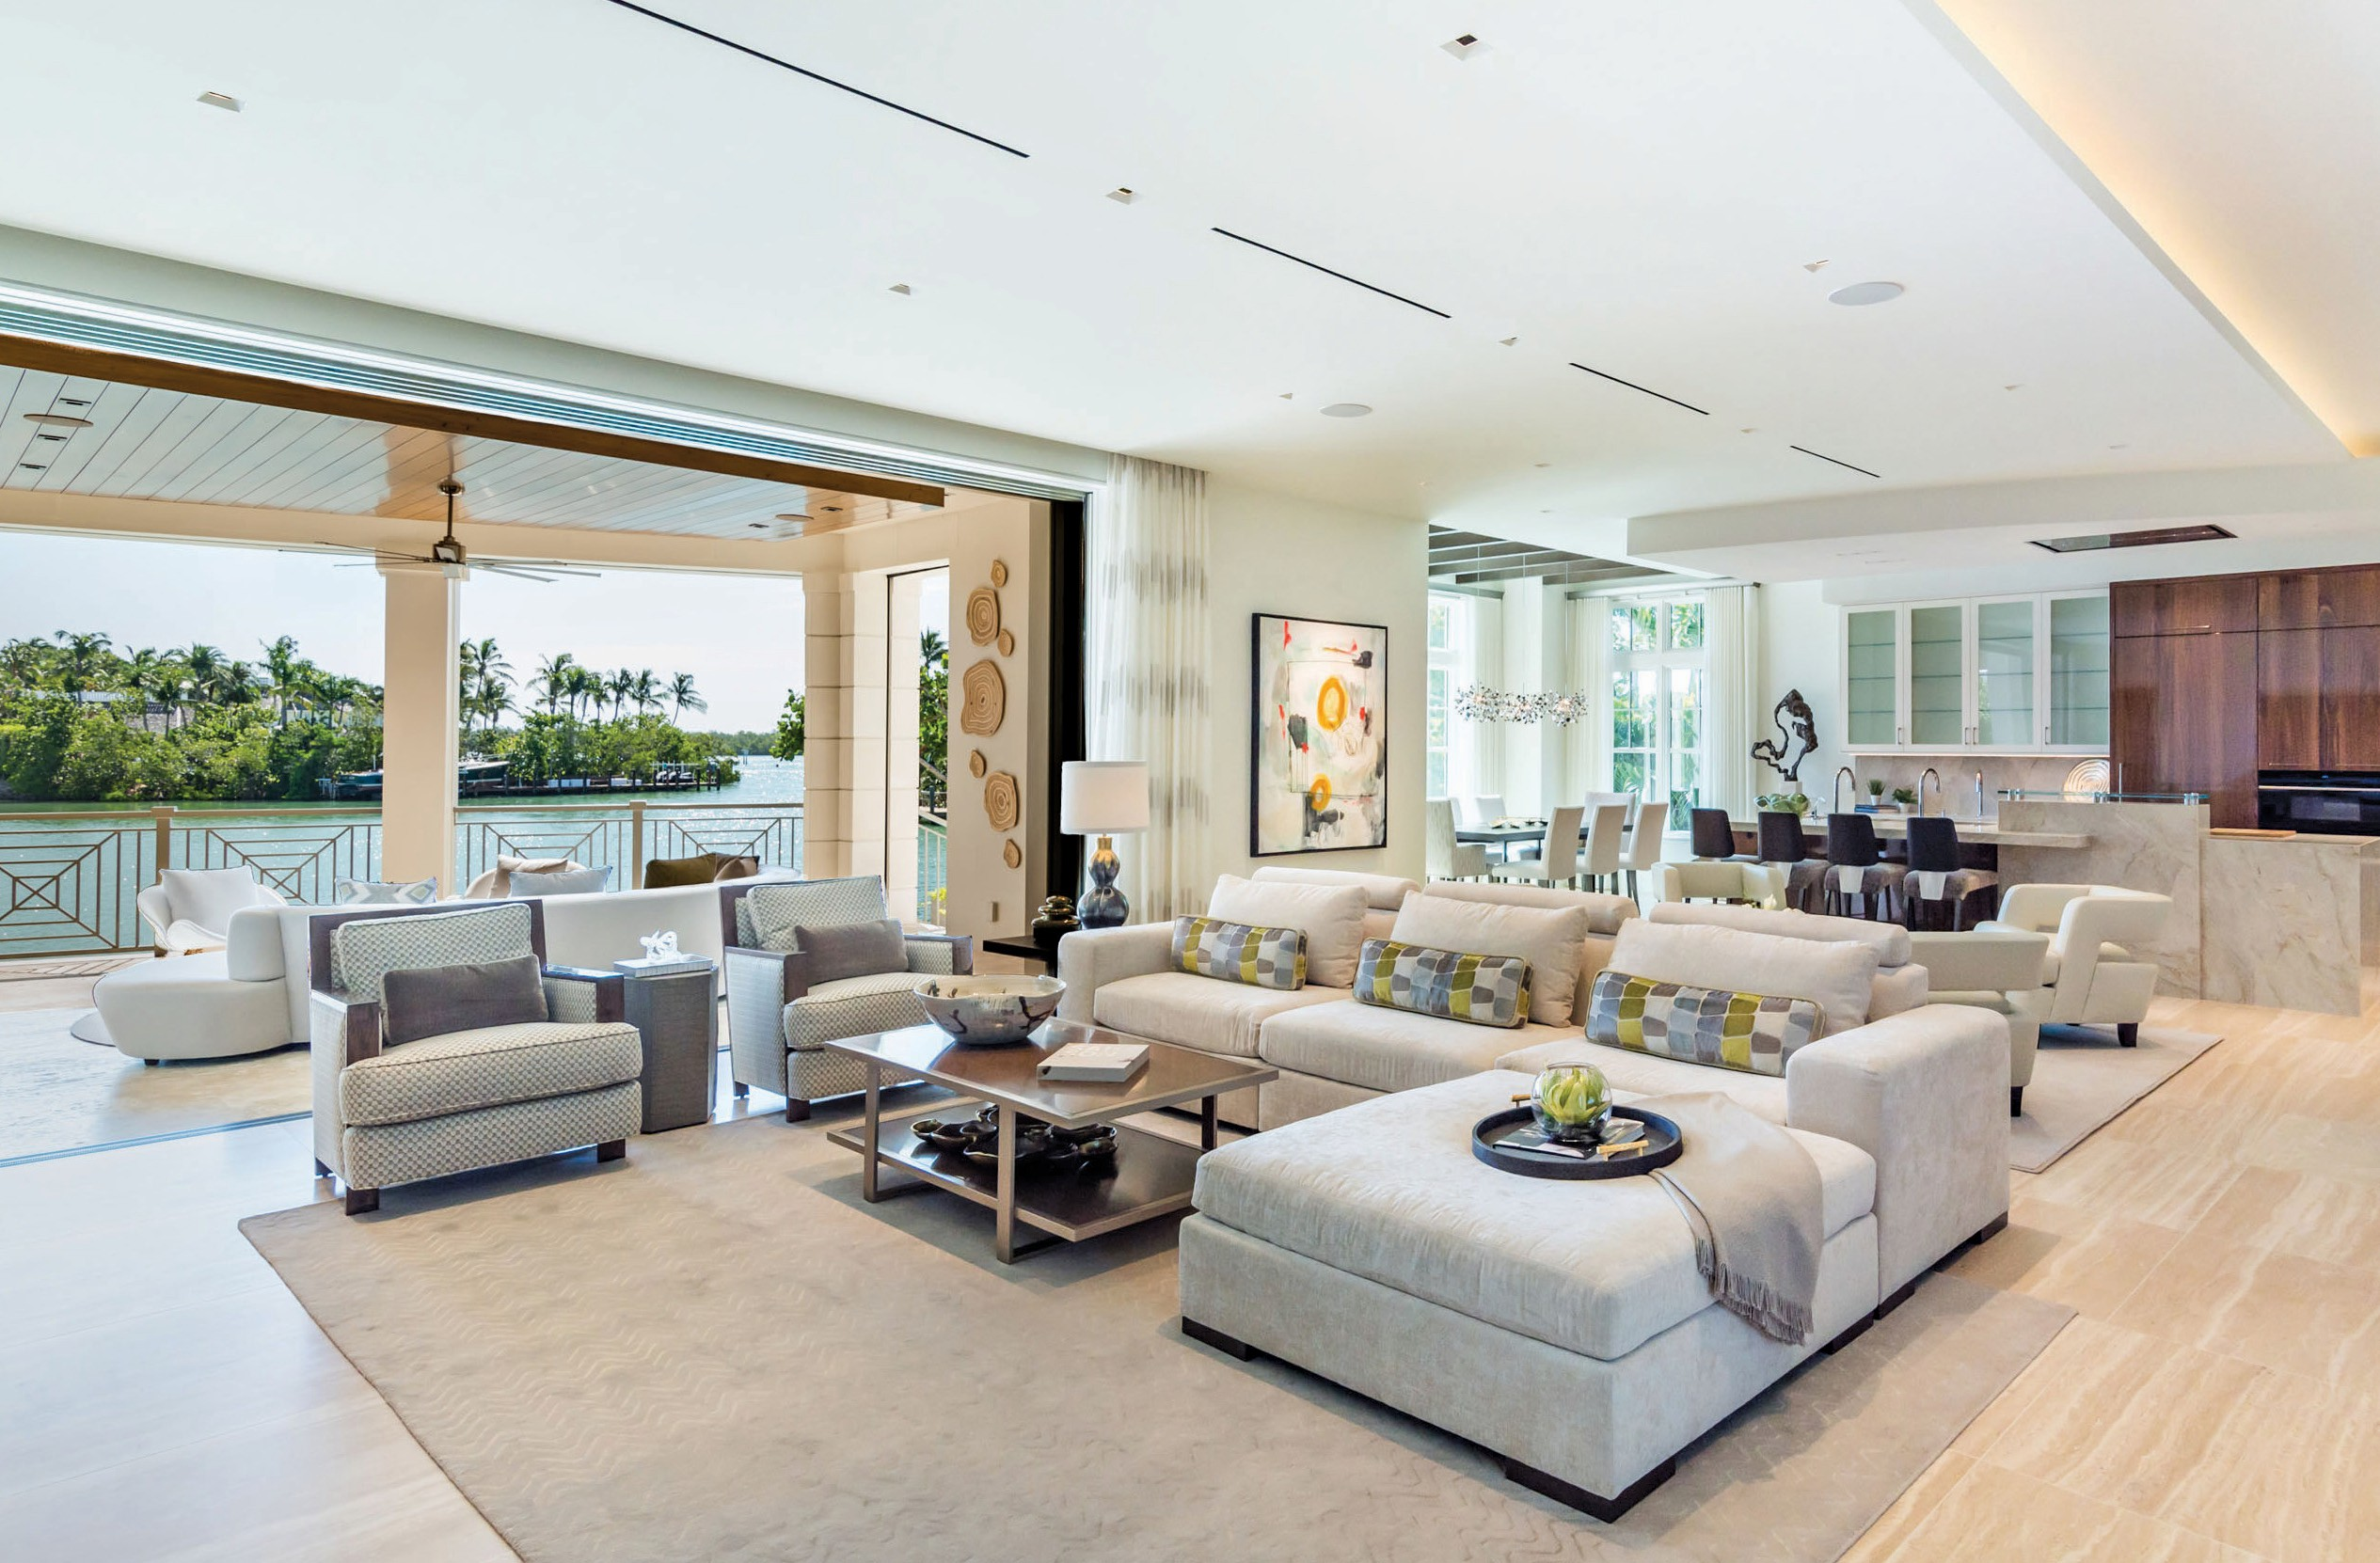 Above: Romanza created a stunning contemporary design boasting elegance in the large great ream with